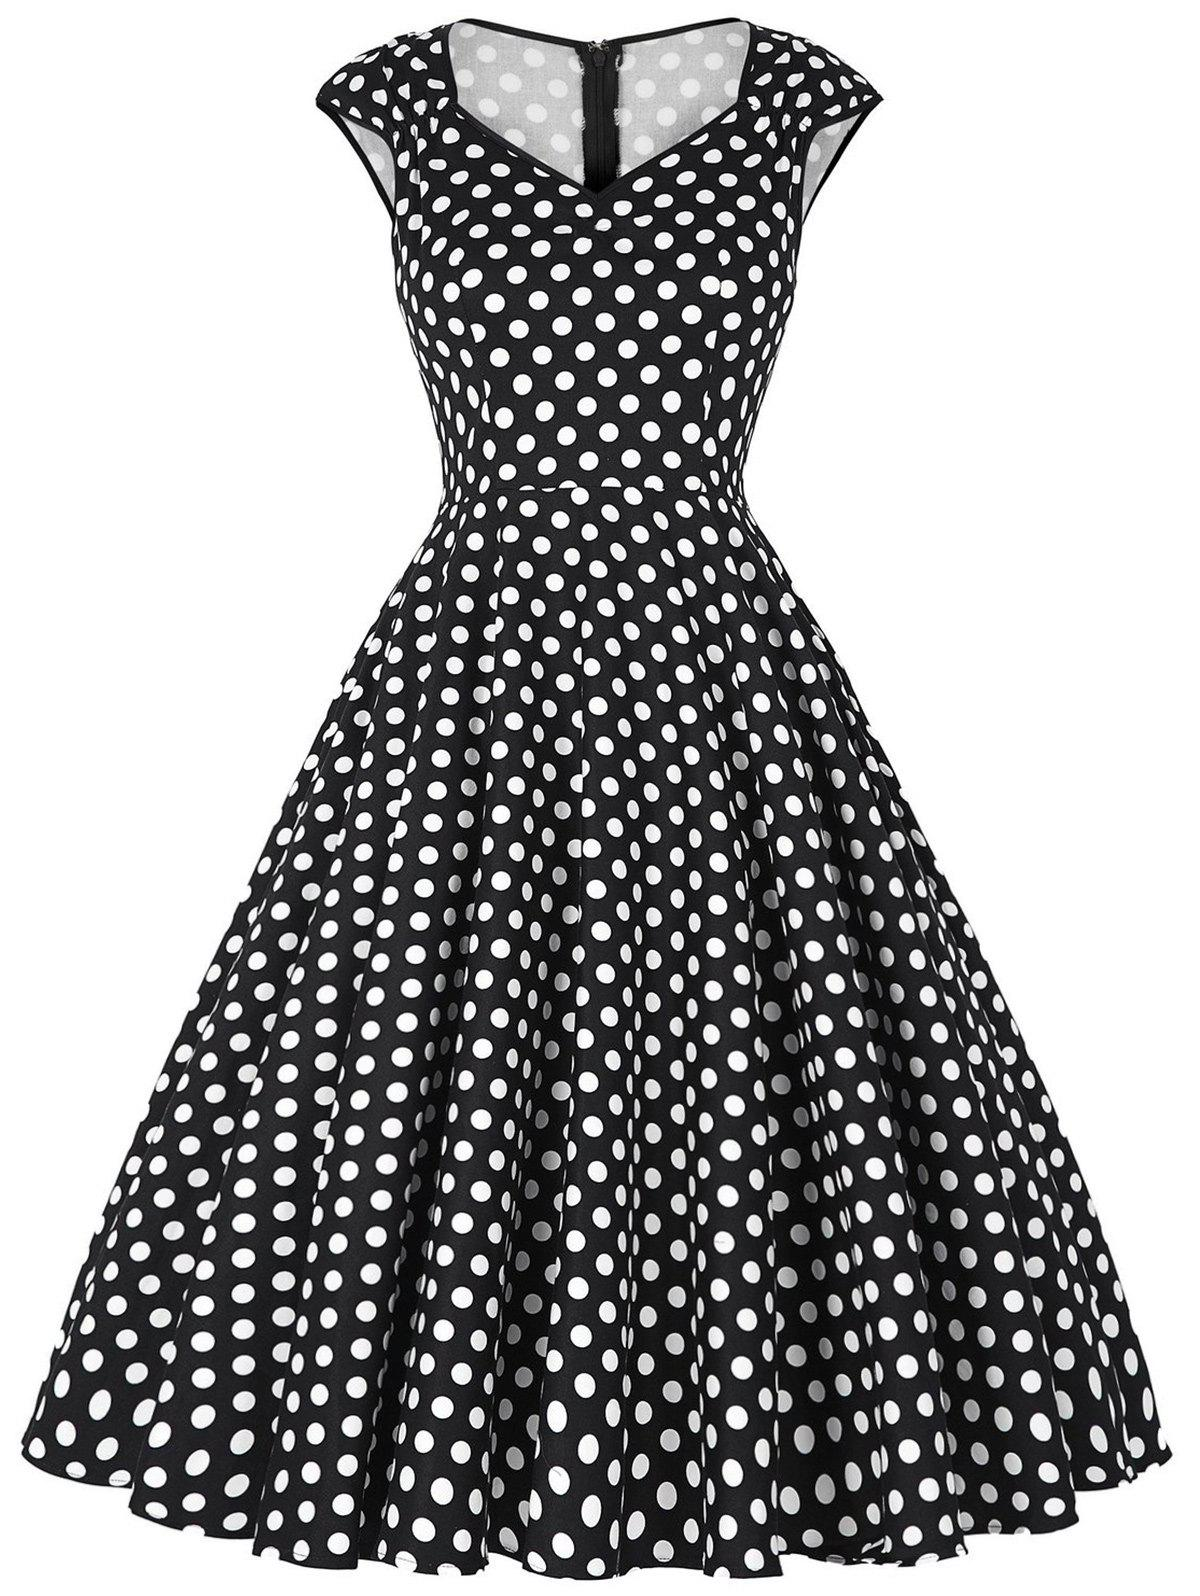 Fancy Polka Dot Cap Sleeve Party Dress